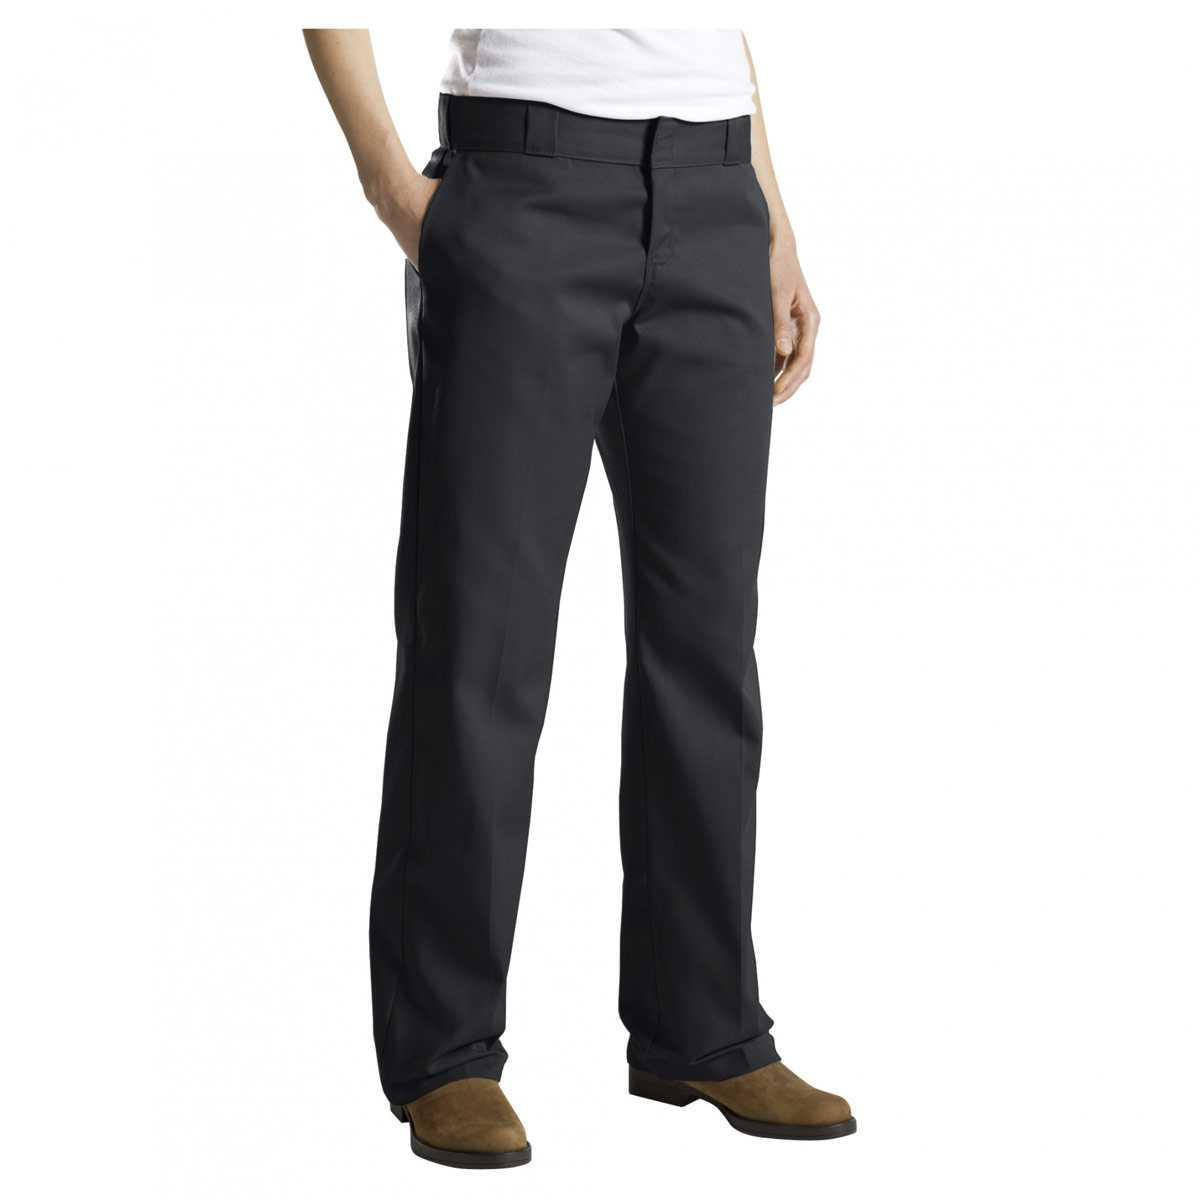 Dickies Women's Original Work Pants - FP774-cgdkfp774_-00_black_front_dickies-womens-work-pants-original-fp774_75.jpg